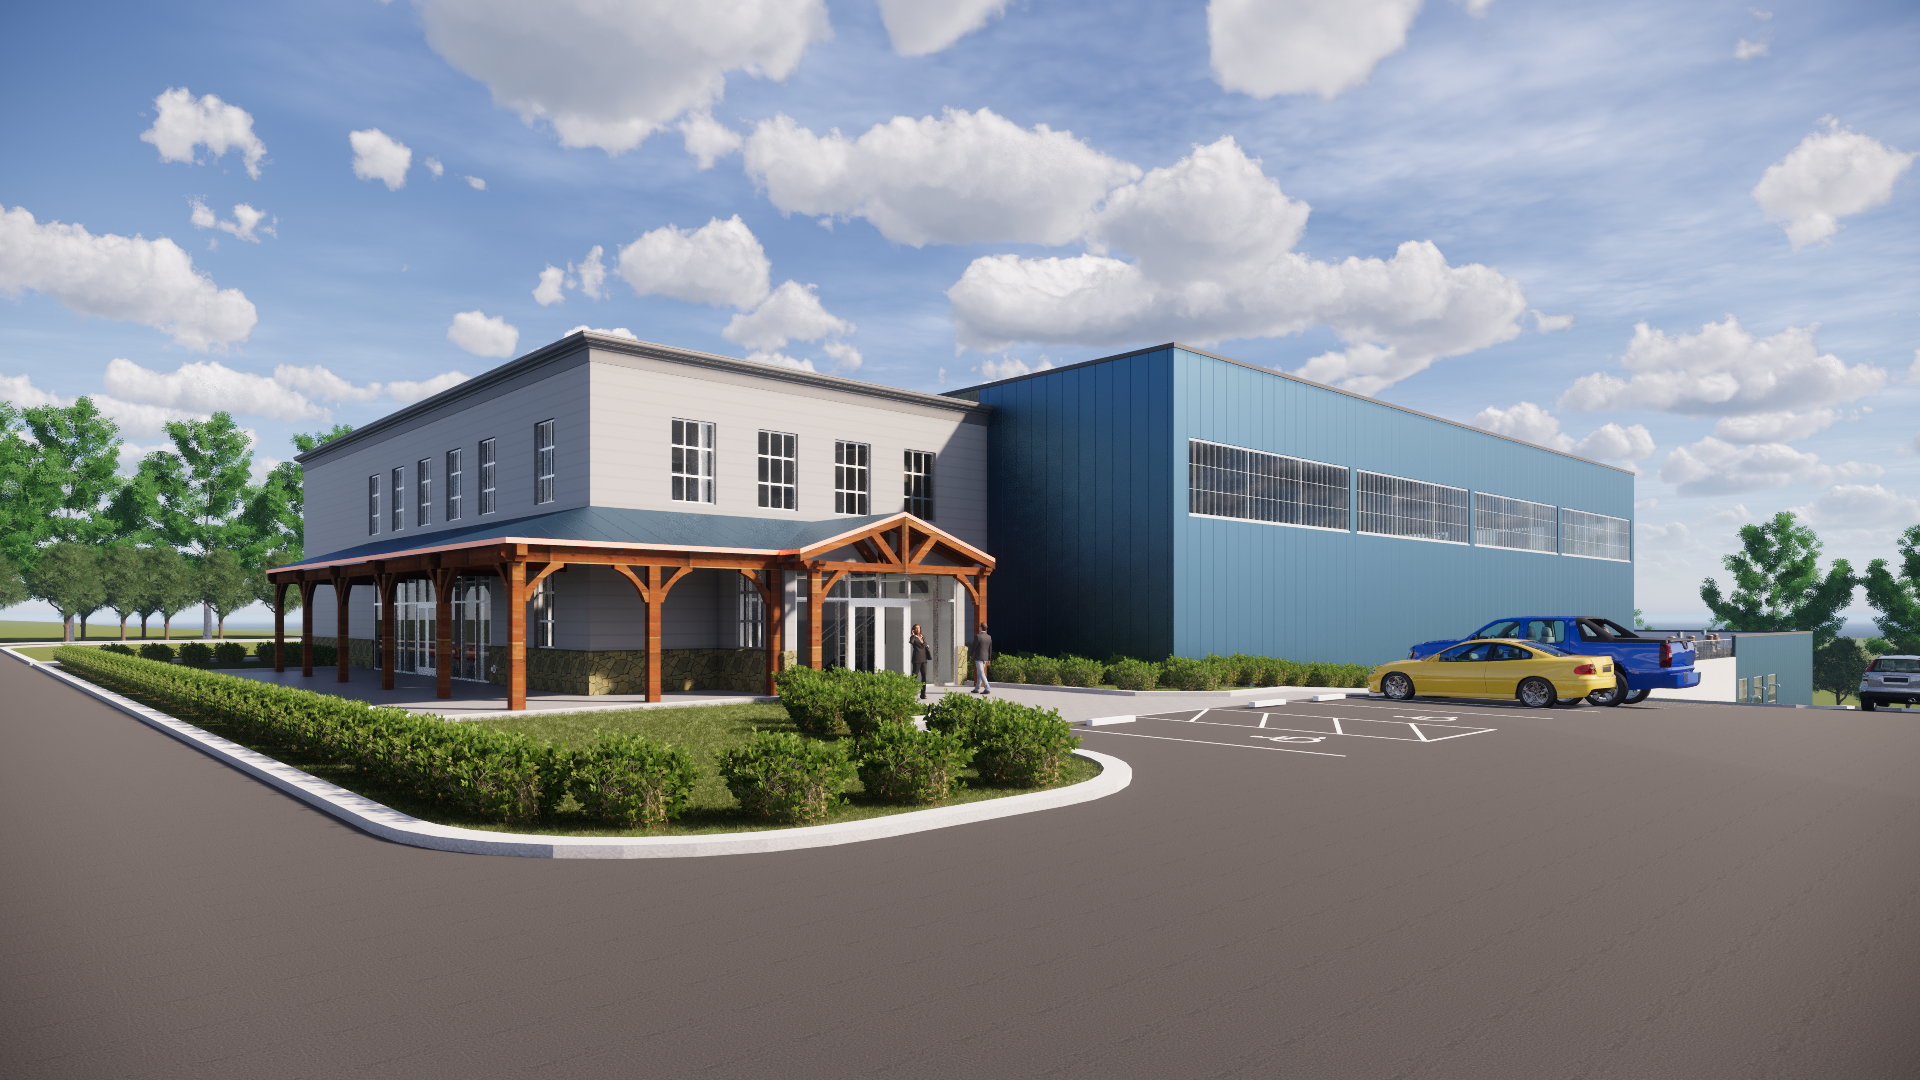 Saco River Drinking Water Treatment Facility Rendering